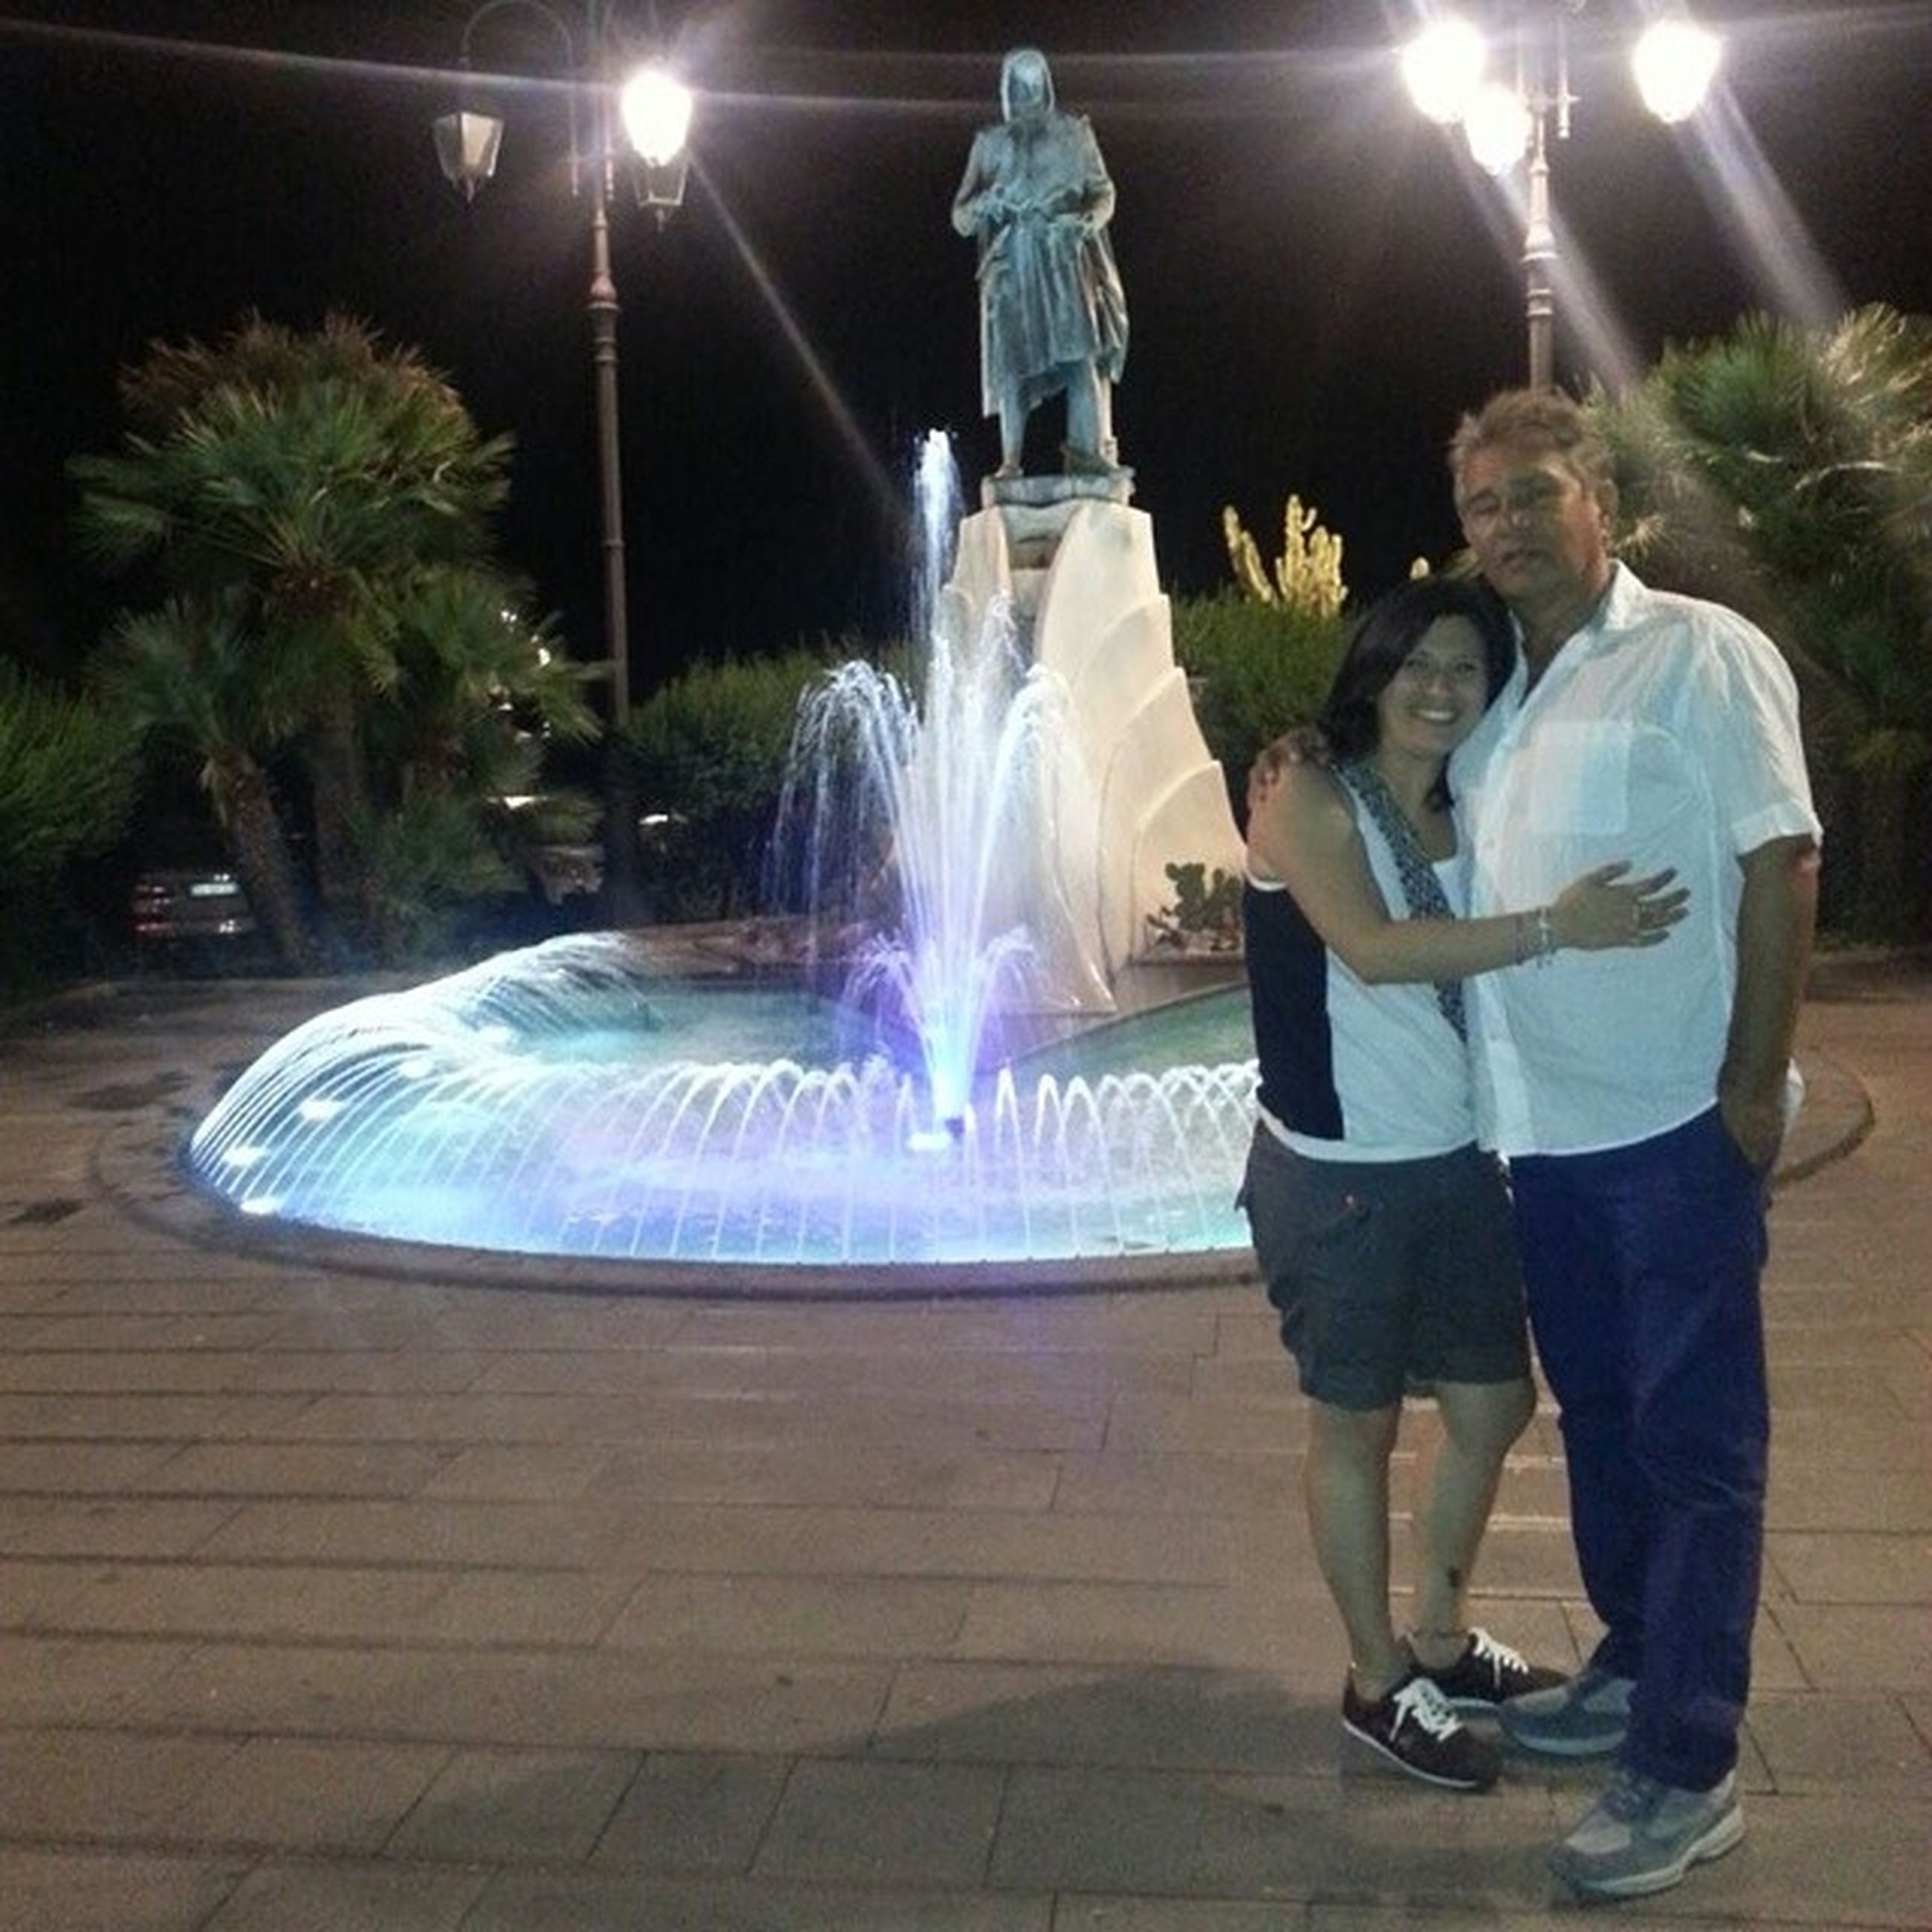 night, illuminated, lifestyles, leisure activity, full length, motion, men, long exposure, fountain, casual clothing, standing, rear view, street, spraying, arts culture and entertainment, person, lighting equipment, celebration